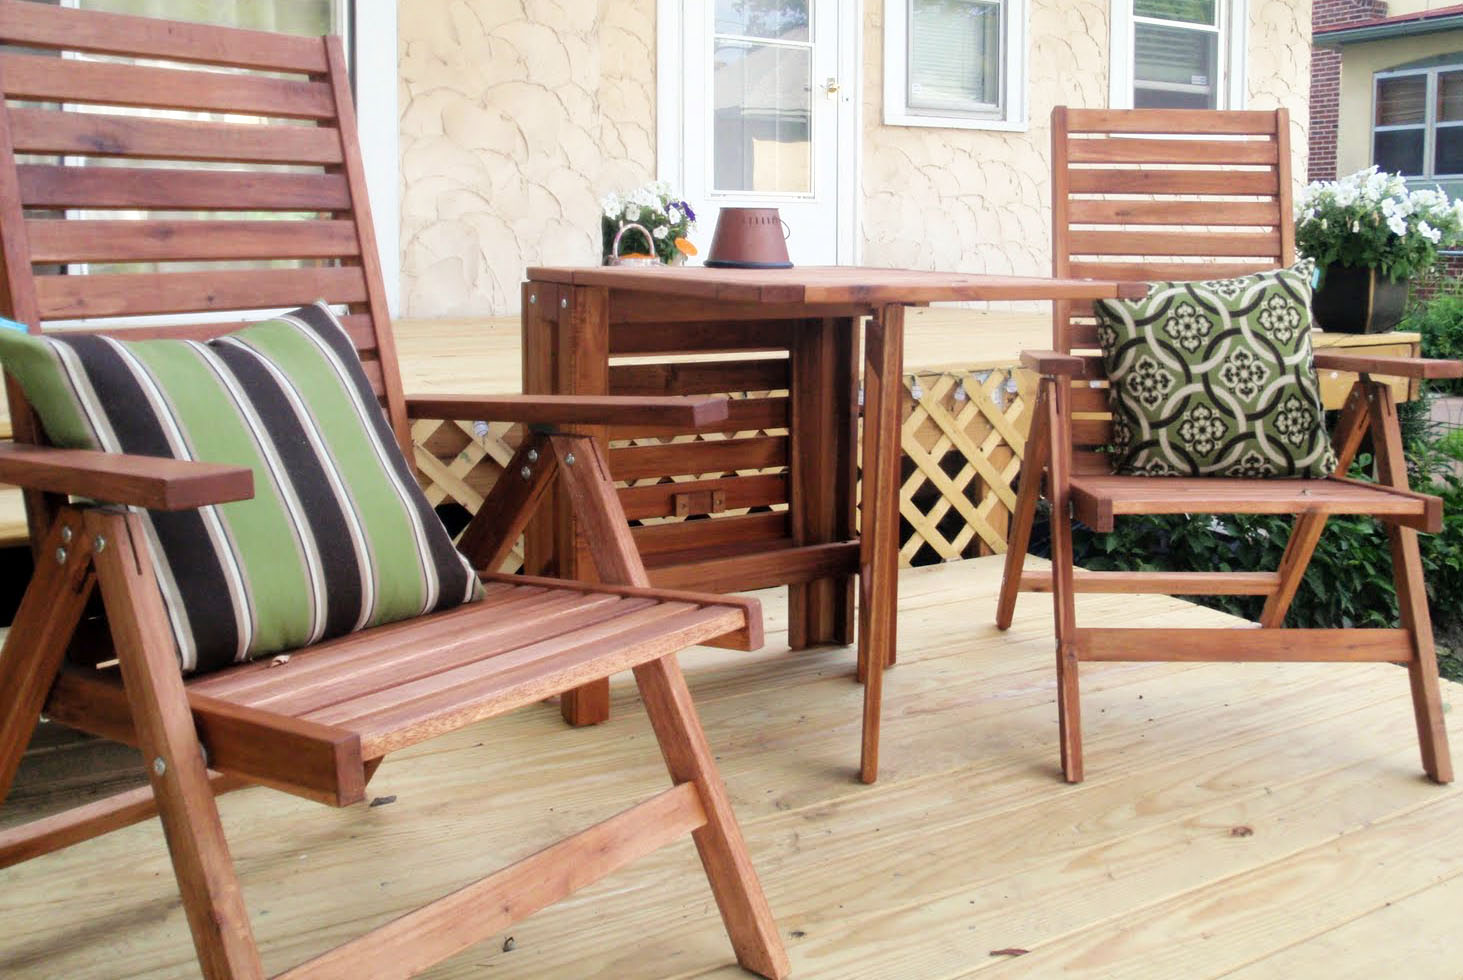 Hammers And High Heels: Patio Furniture Refresh & Outdoor Decor Shopping